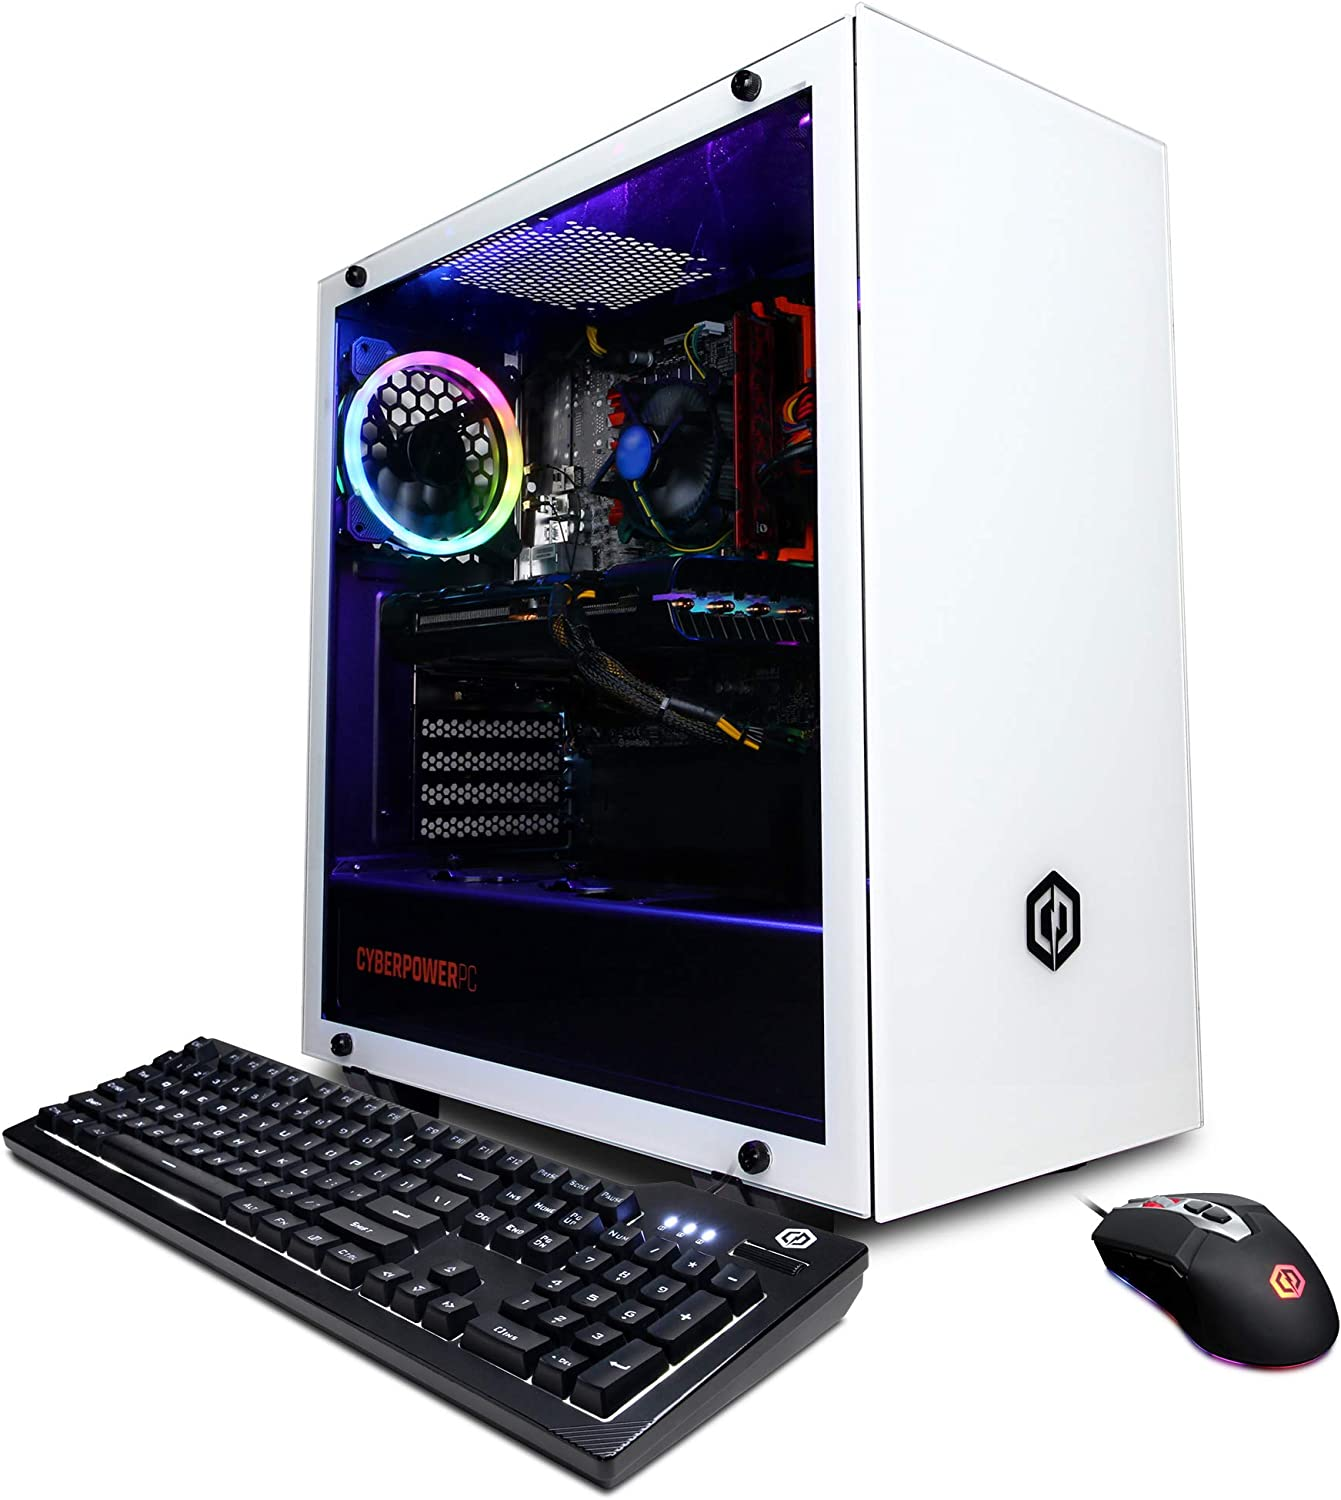 CyberpowerPC Gamer Xtreme VR Gaming PC, Intel Core i5-10400 2.9GHz, 8GB DDR4, AMD Radeon RX 5500 XT 8GB, 240GB SSD, 2TB HDD, WiFi Ready & Win 10 Home (GXiVR8020A8, White)